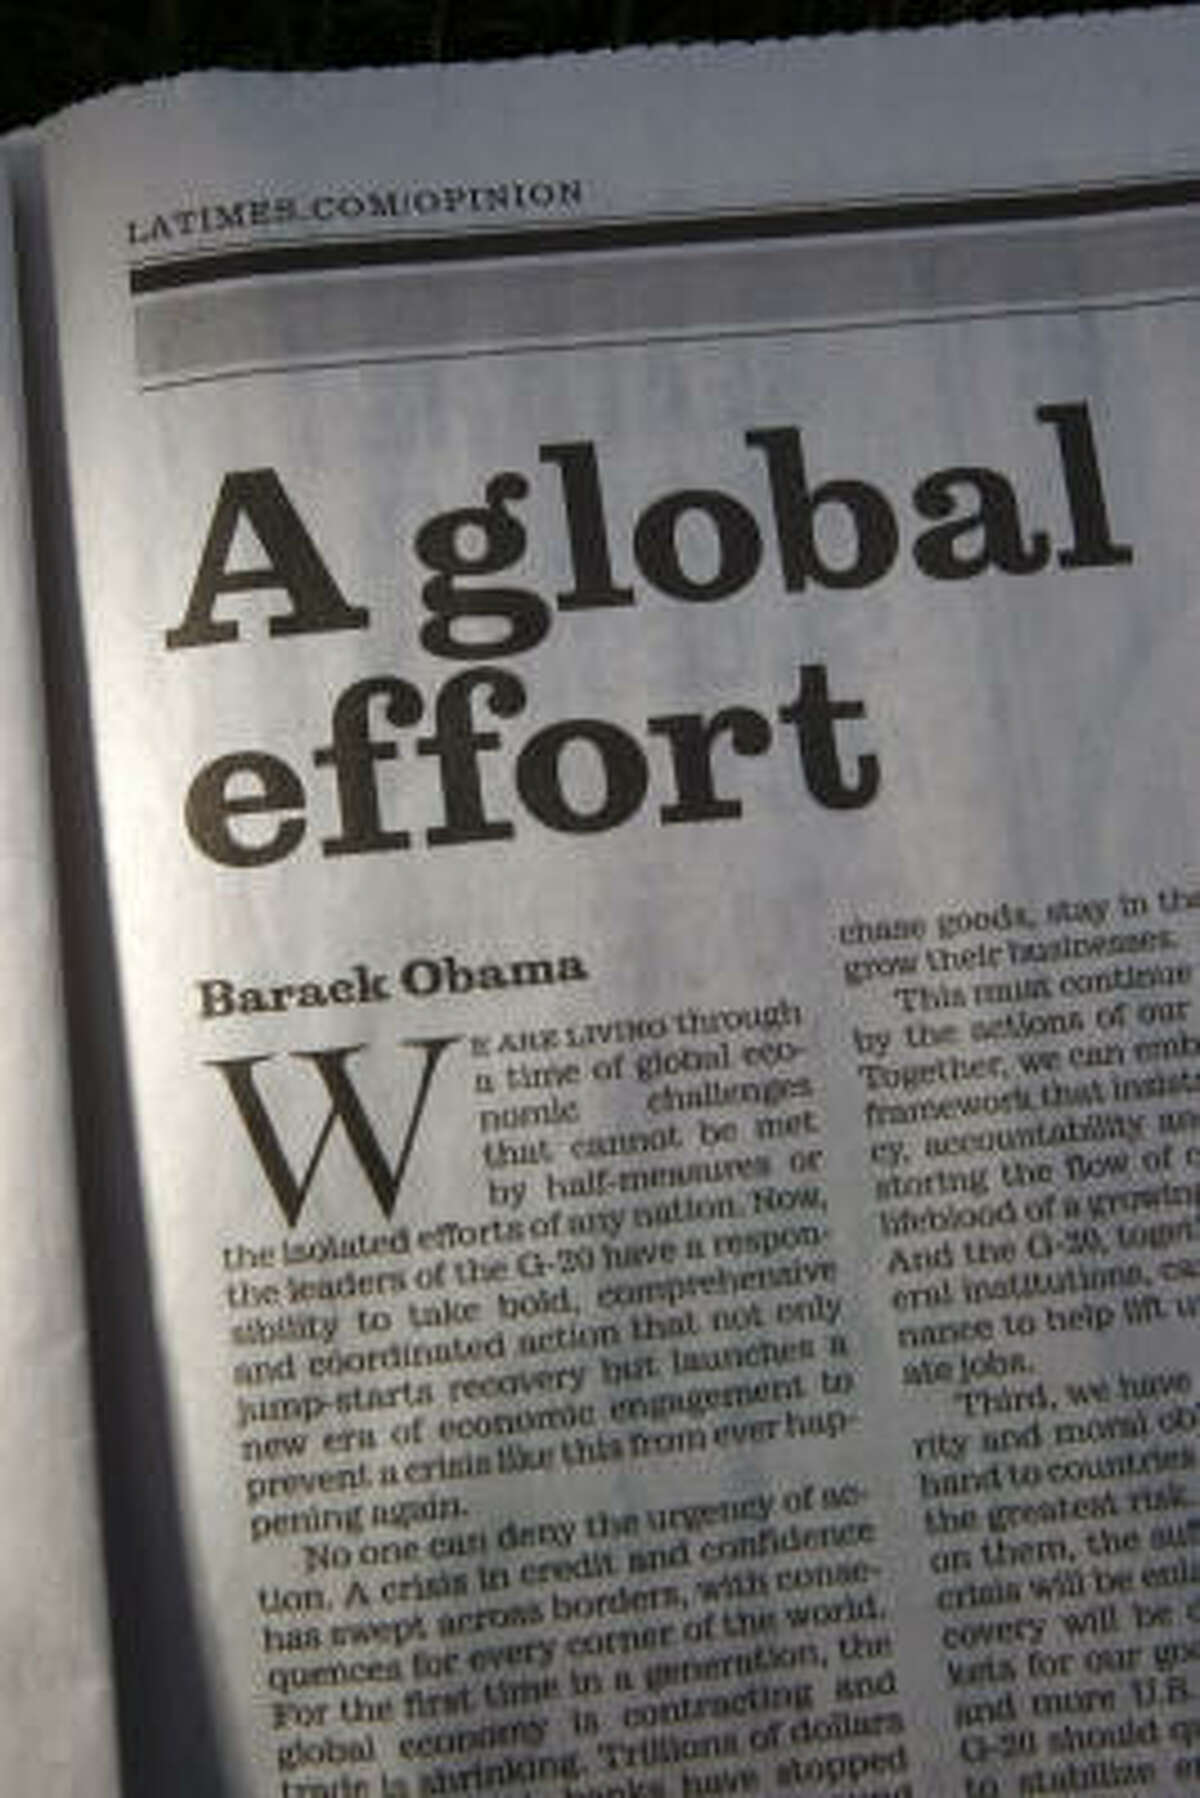 In a column printed in 31 newspapers worldwide, President Barack Obama urges world leaders to join together and take